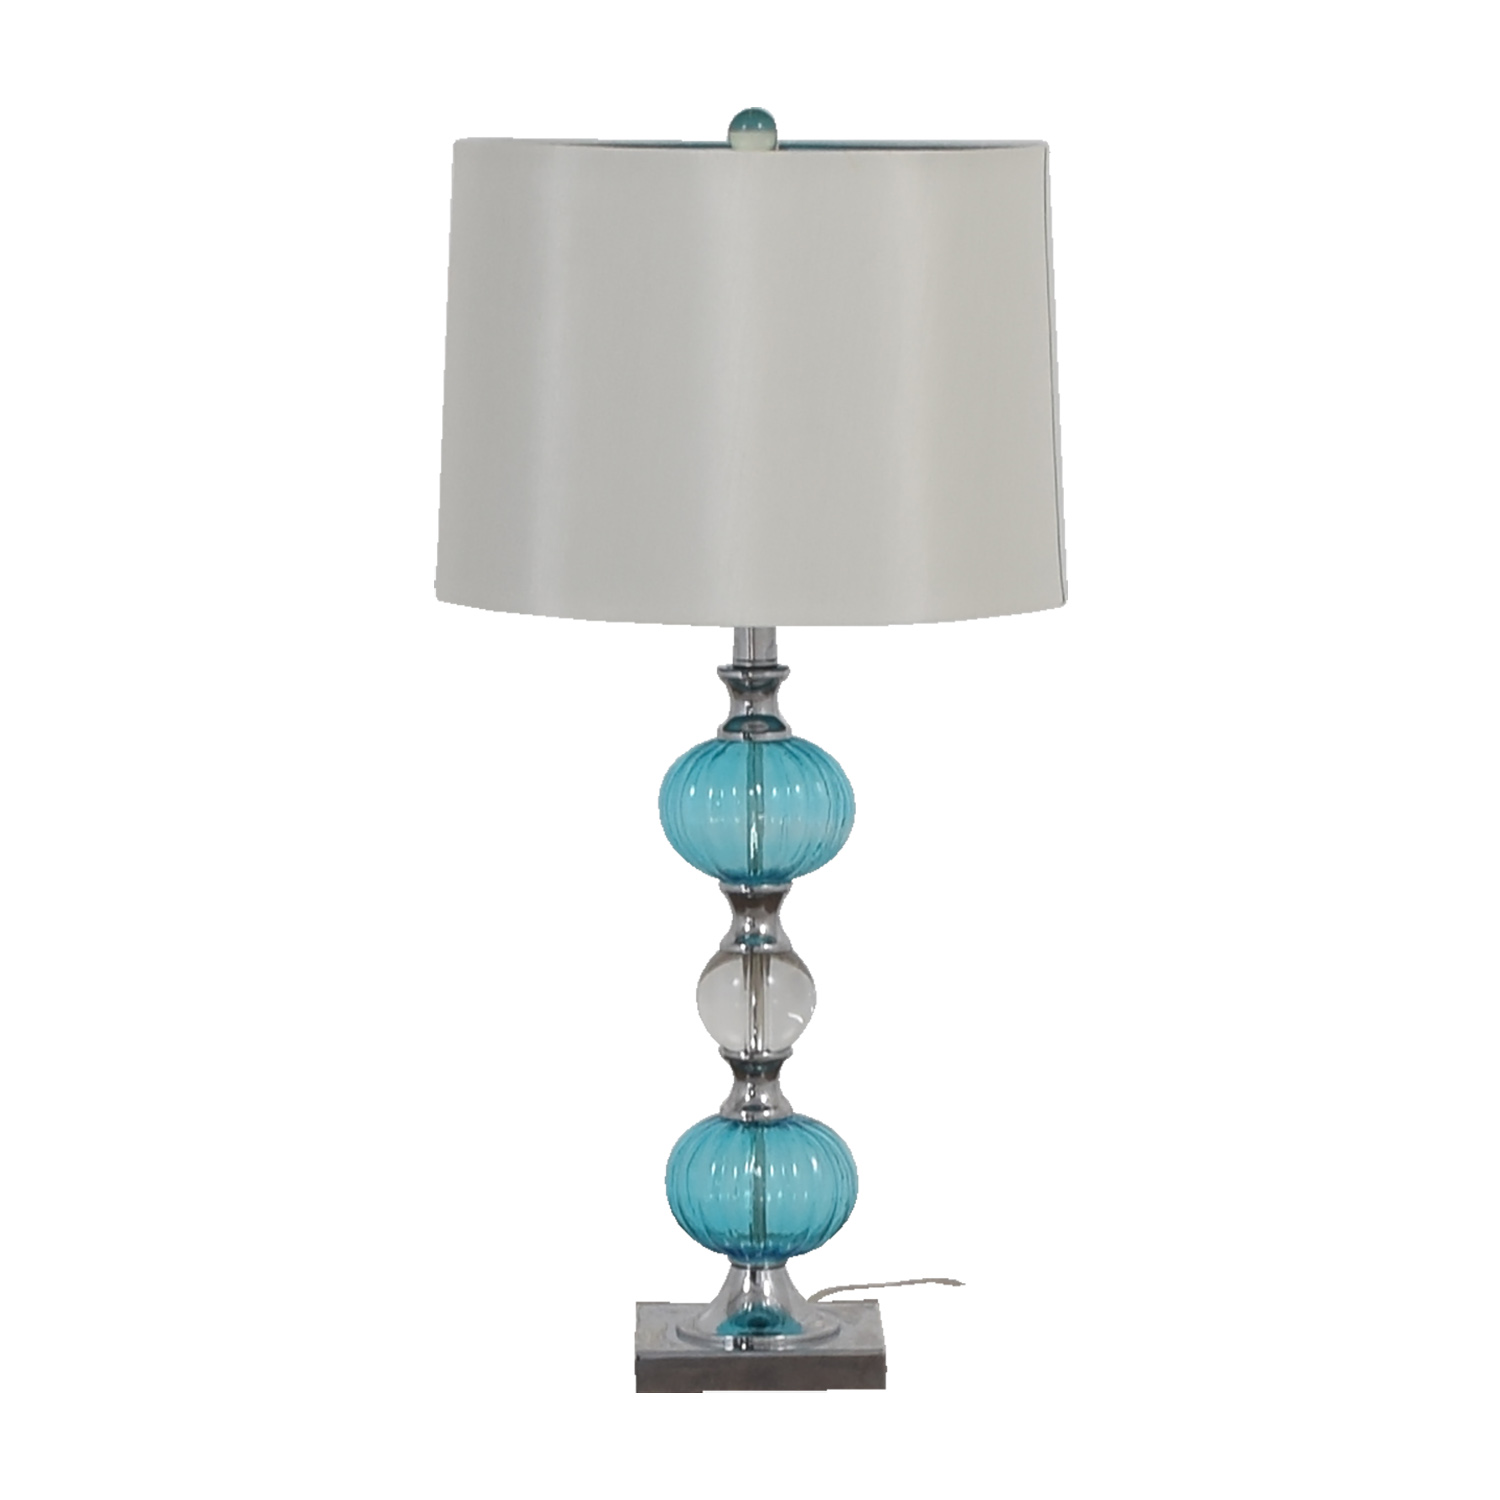 buy Turquoise Glass Side Table Lamp Lamps